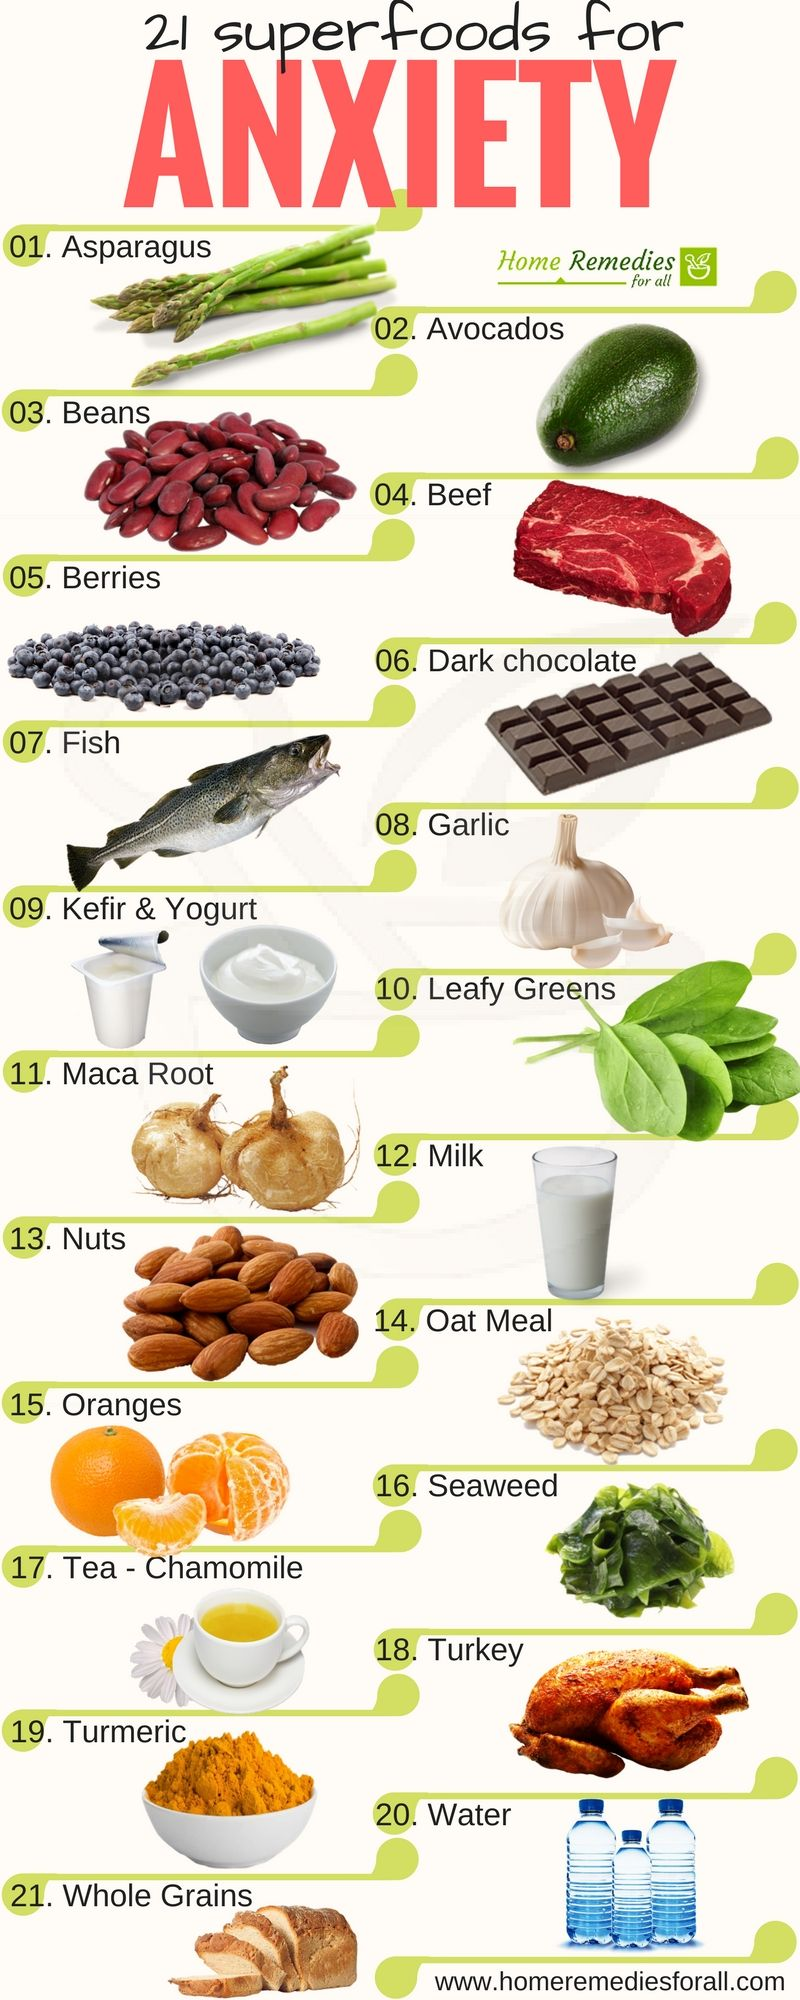 Get Rid Of Anxiety With These 21 Super Foods To Live Stress Free And